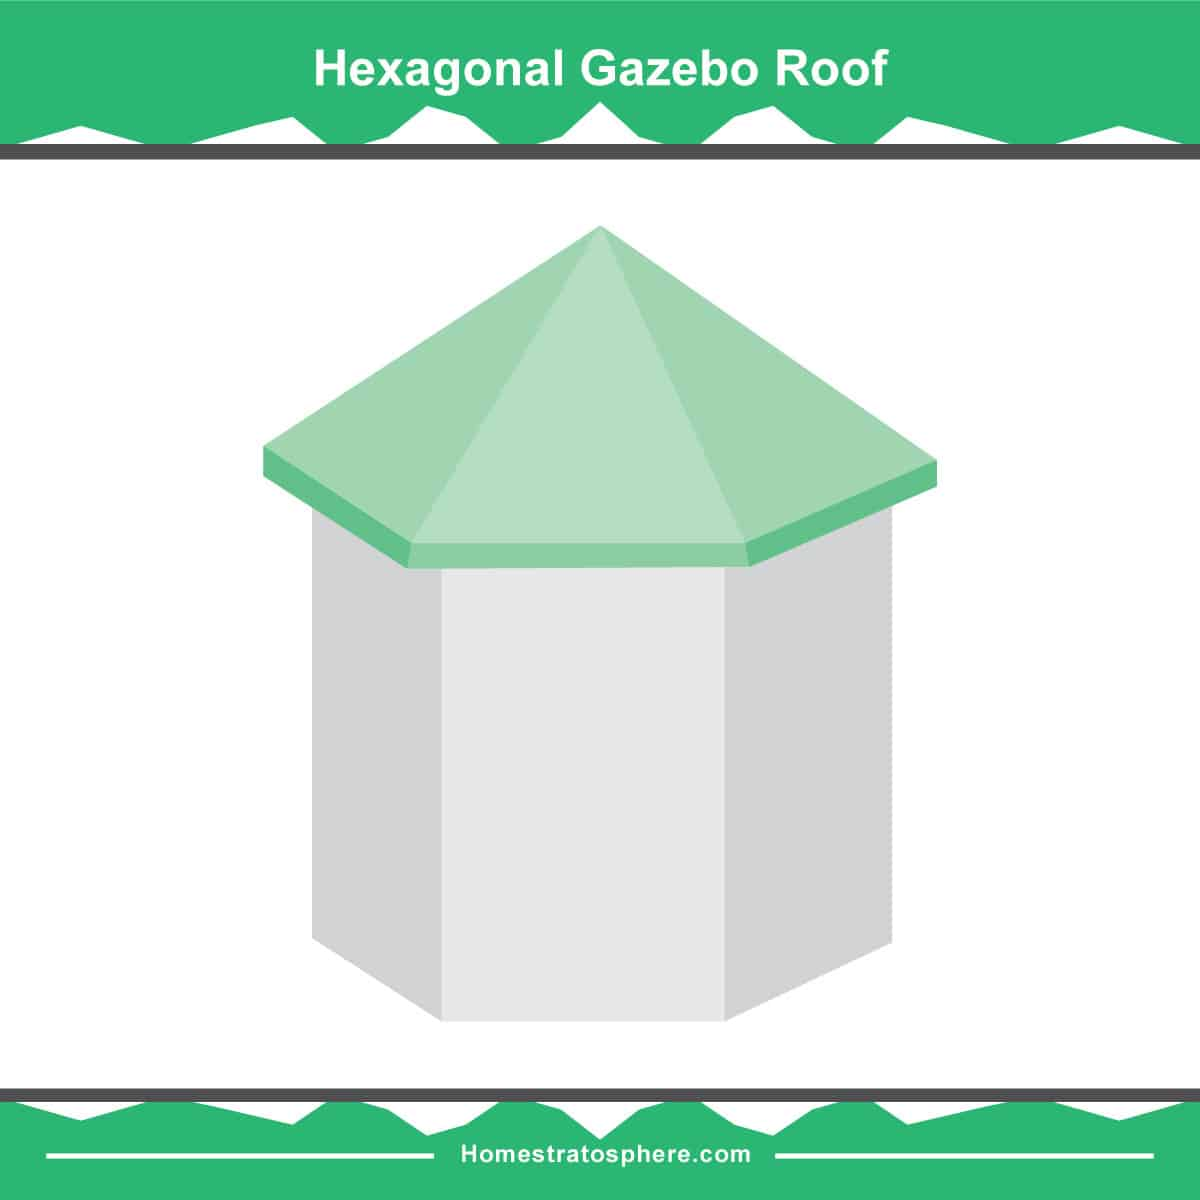 Hexagonal gazebo roof diagram